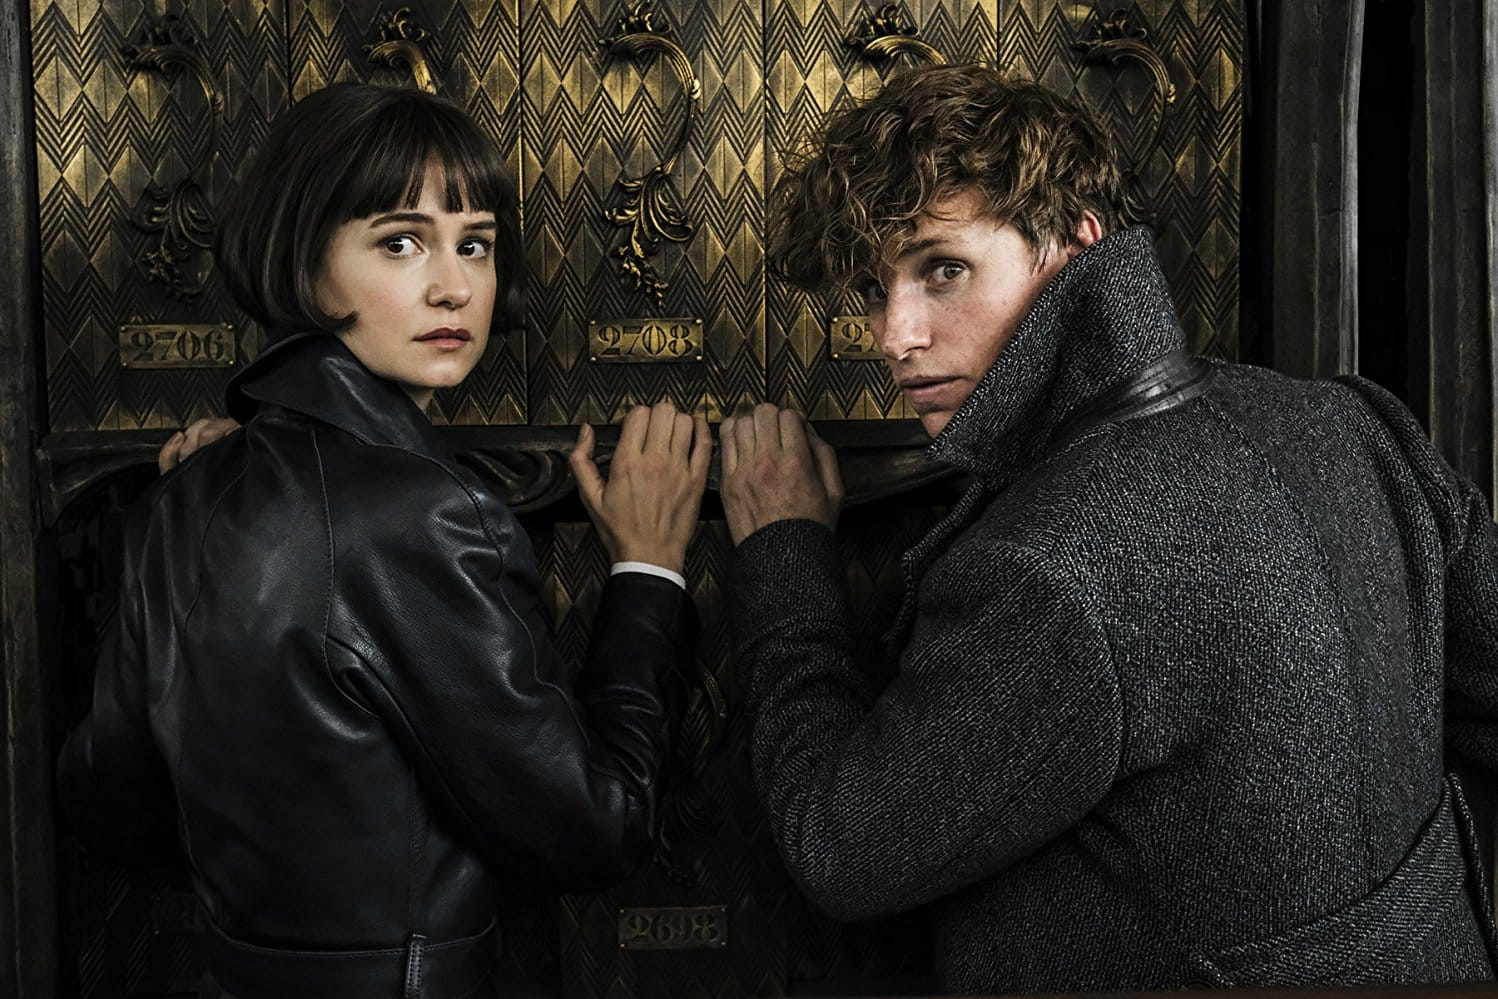 Fantastic Beasts: The Crimes of Grindelwald revela primer tráiler vía Warner Bros.